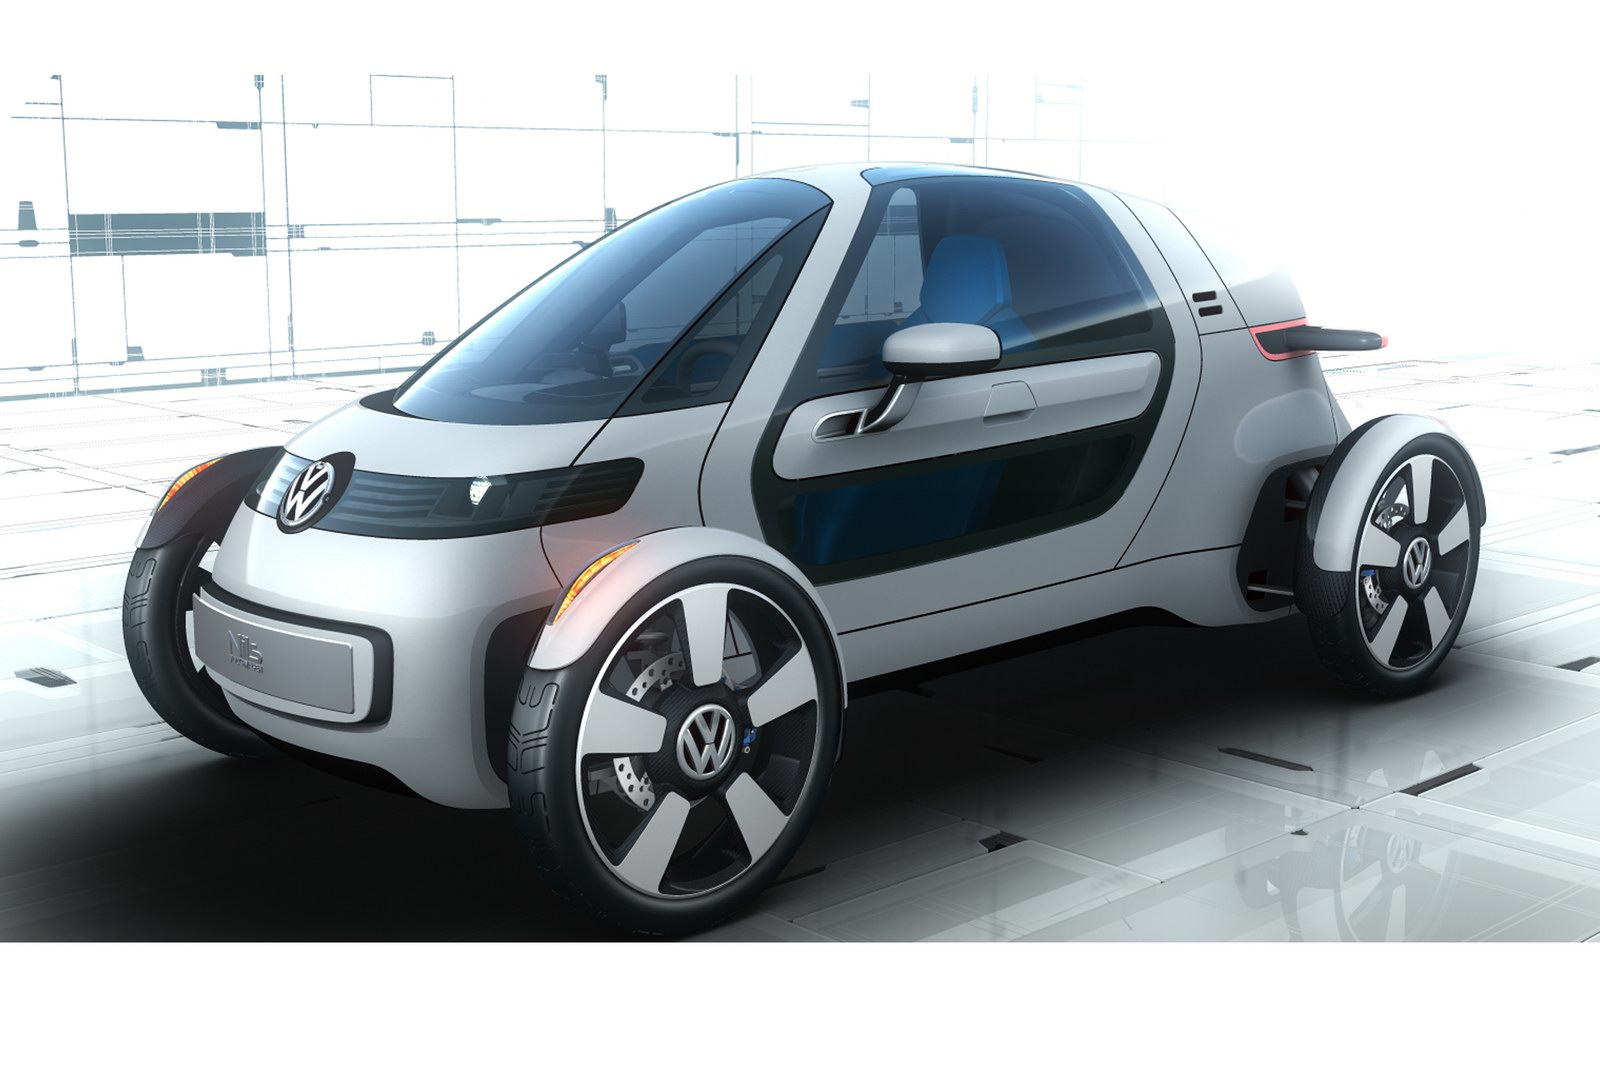 2011 VW NILS 6 THE SINGLE SEATER ELECTRIC CITY CAR 2011 VOLKSWAGEN NILS LAUNCHED IN FRANKFURT SHOW